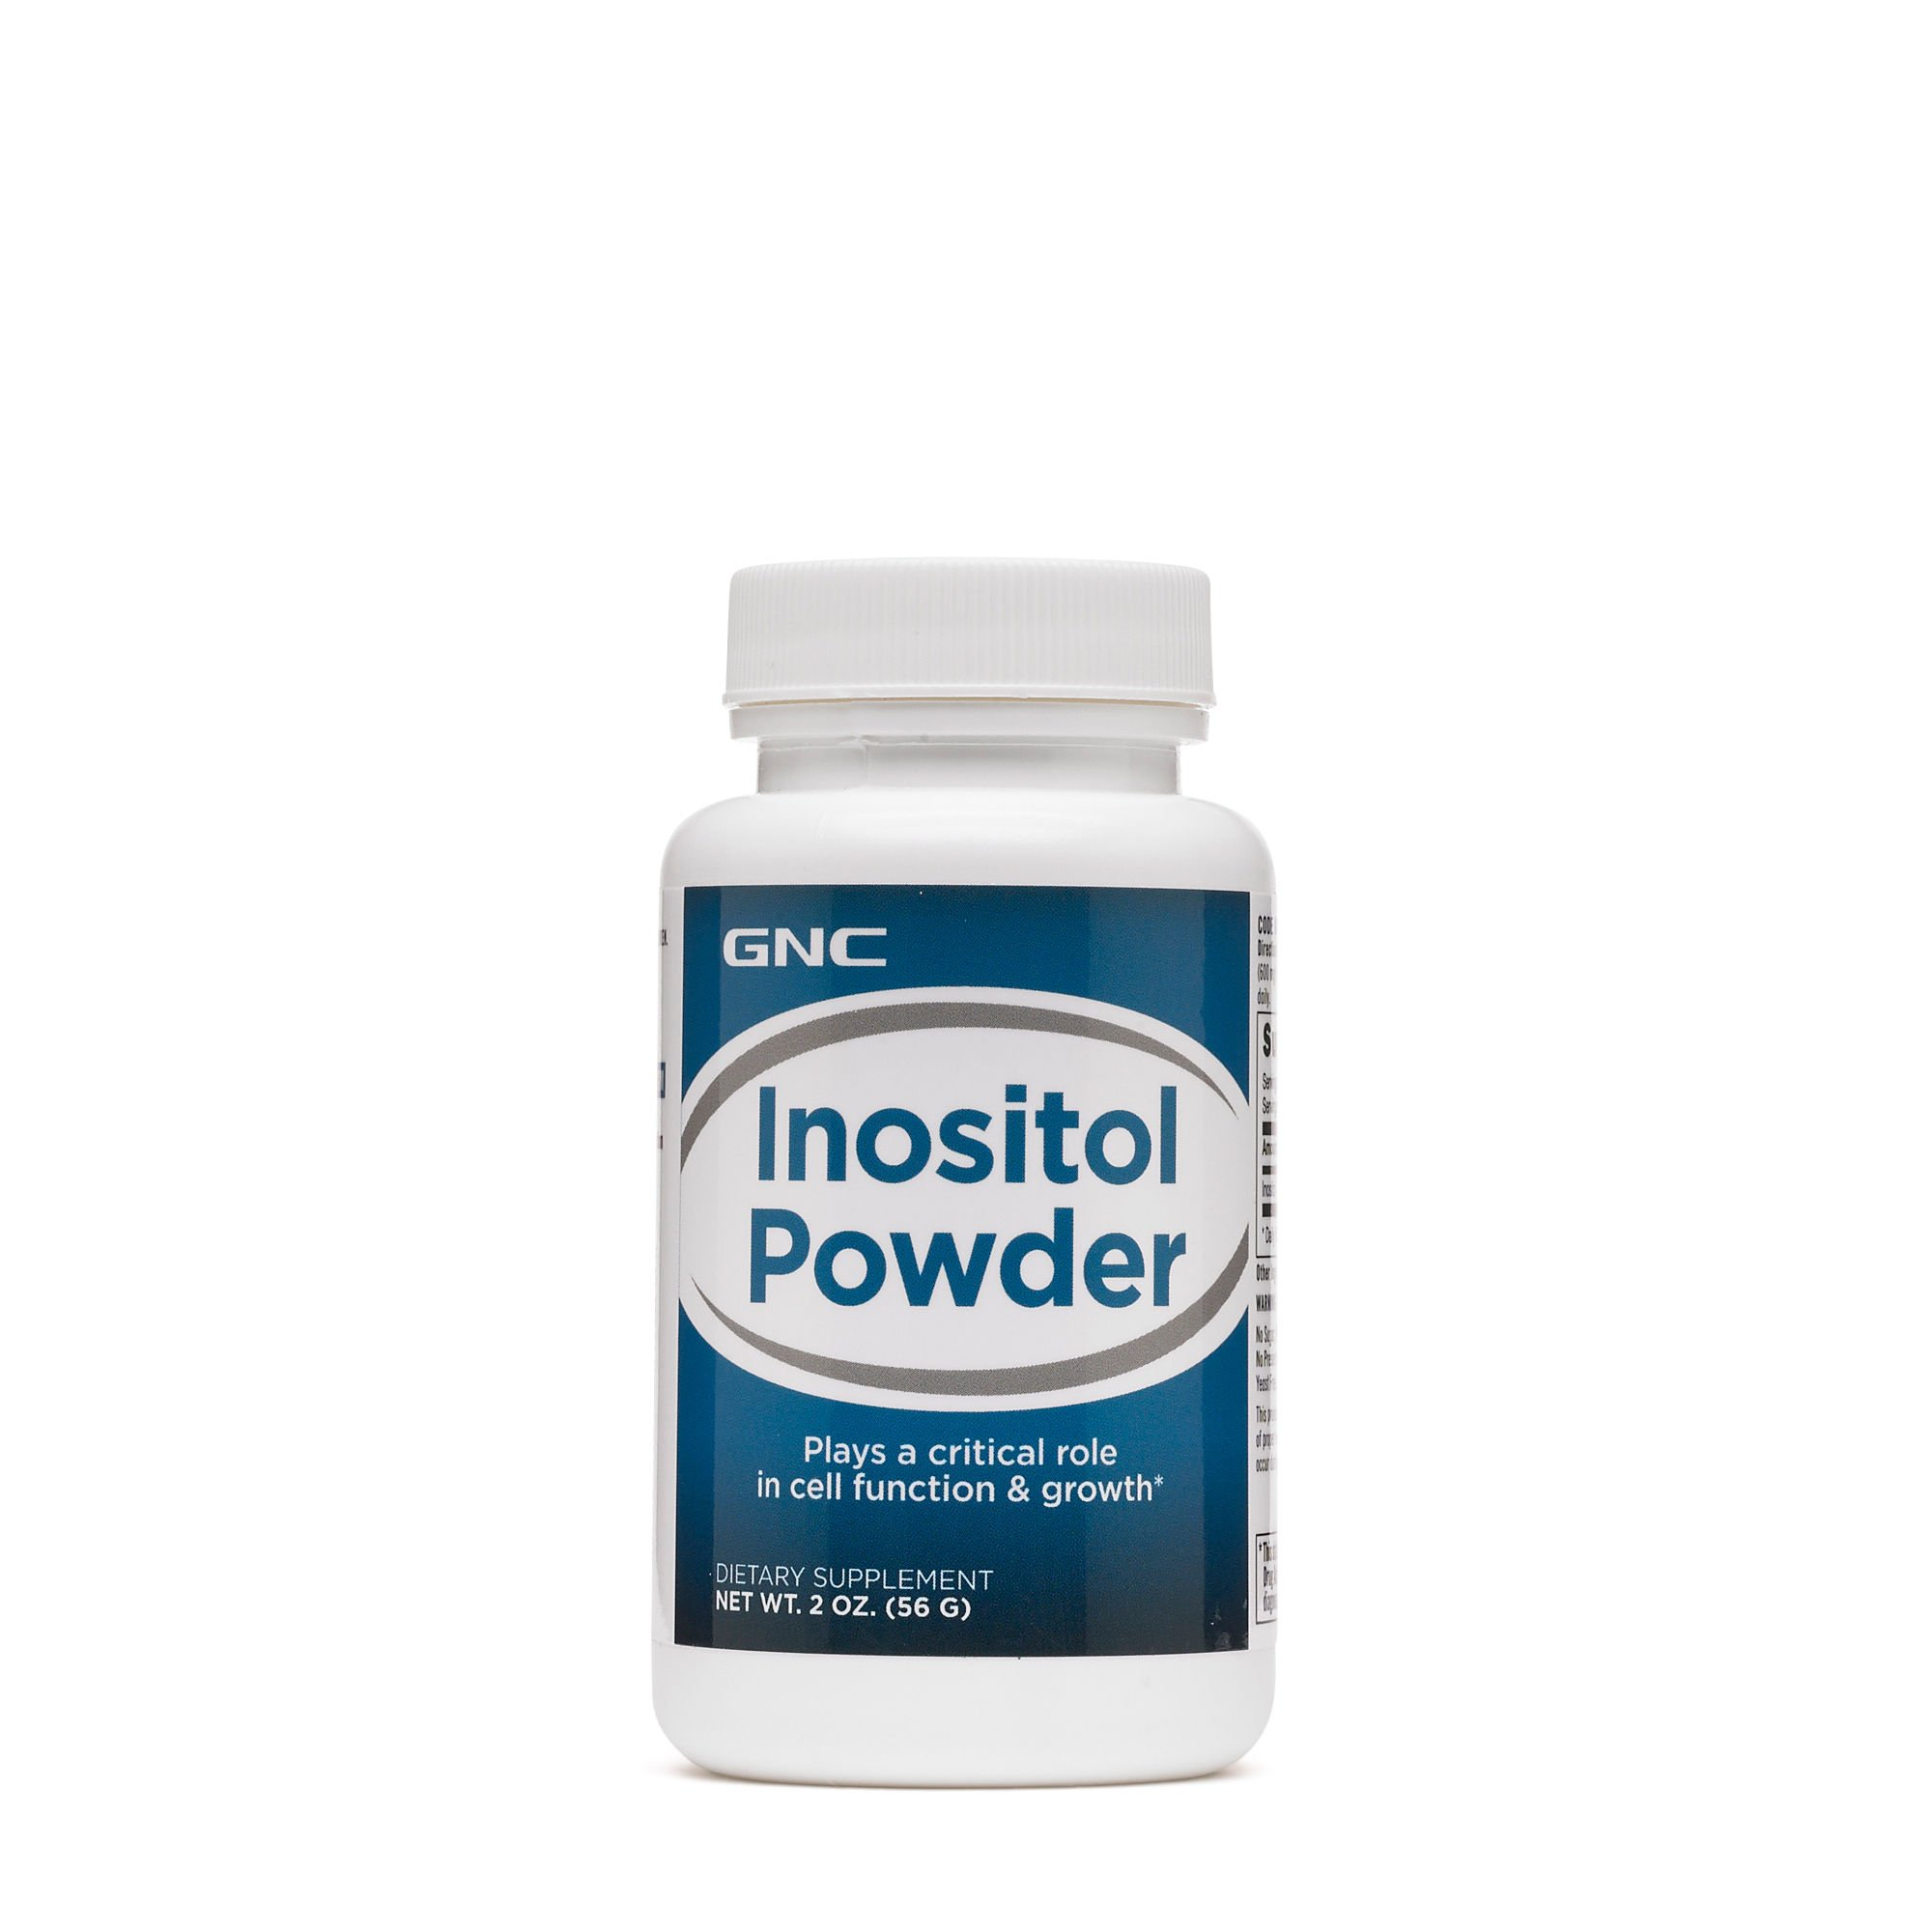 GNC Inositol Powder, 93 Servings